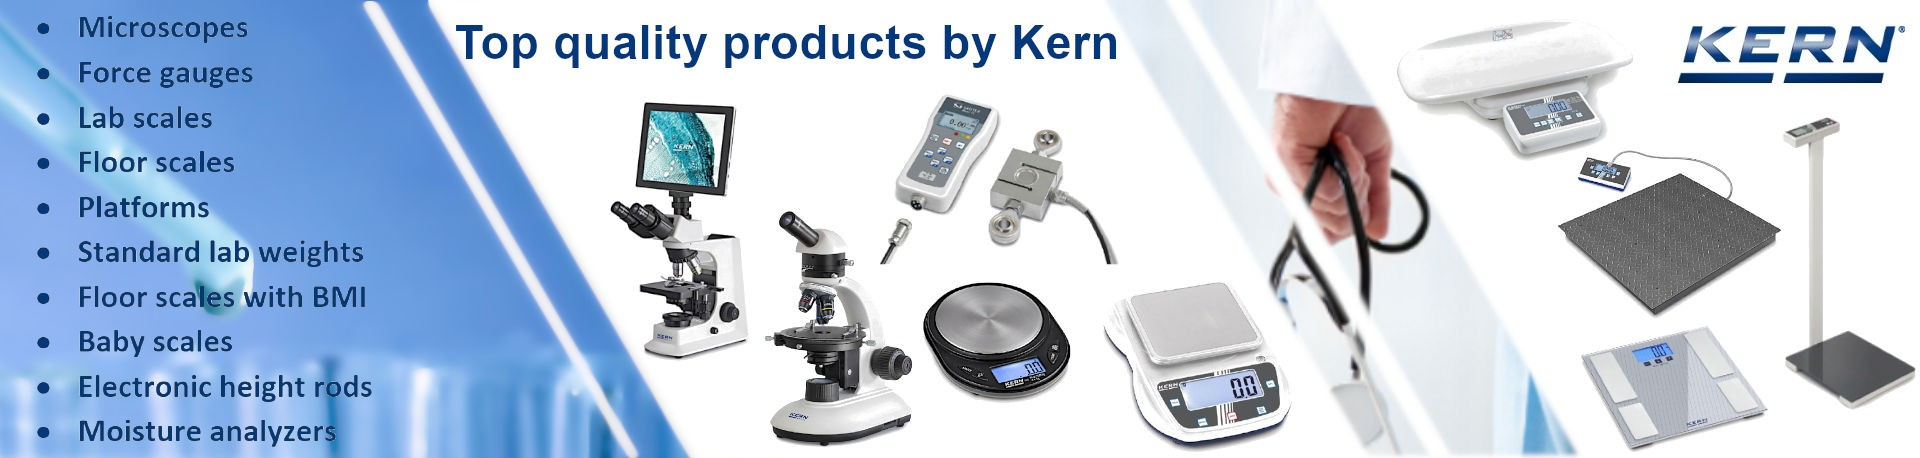 KERN PRODUCTS